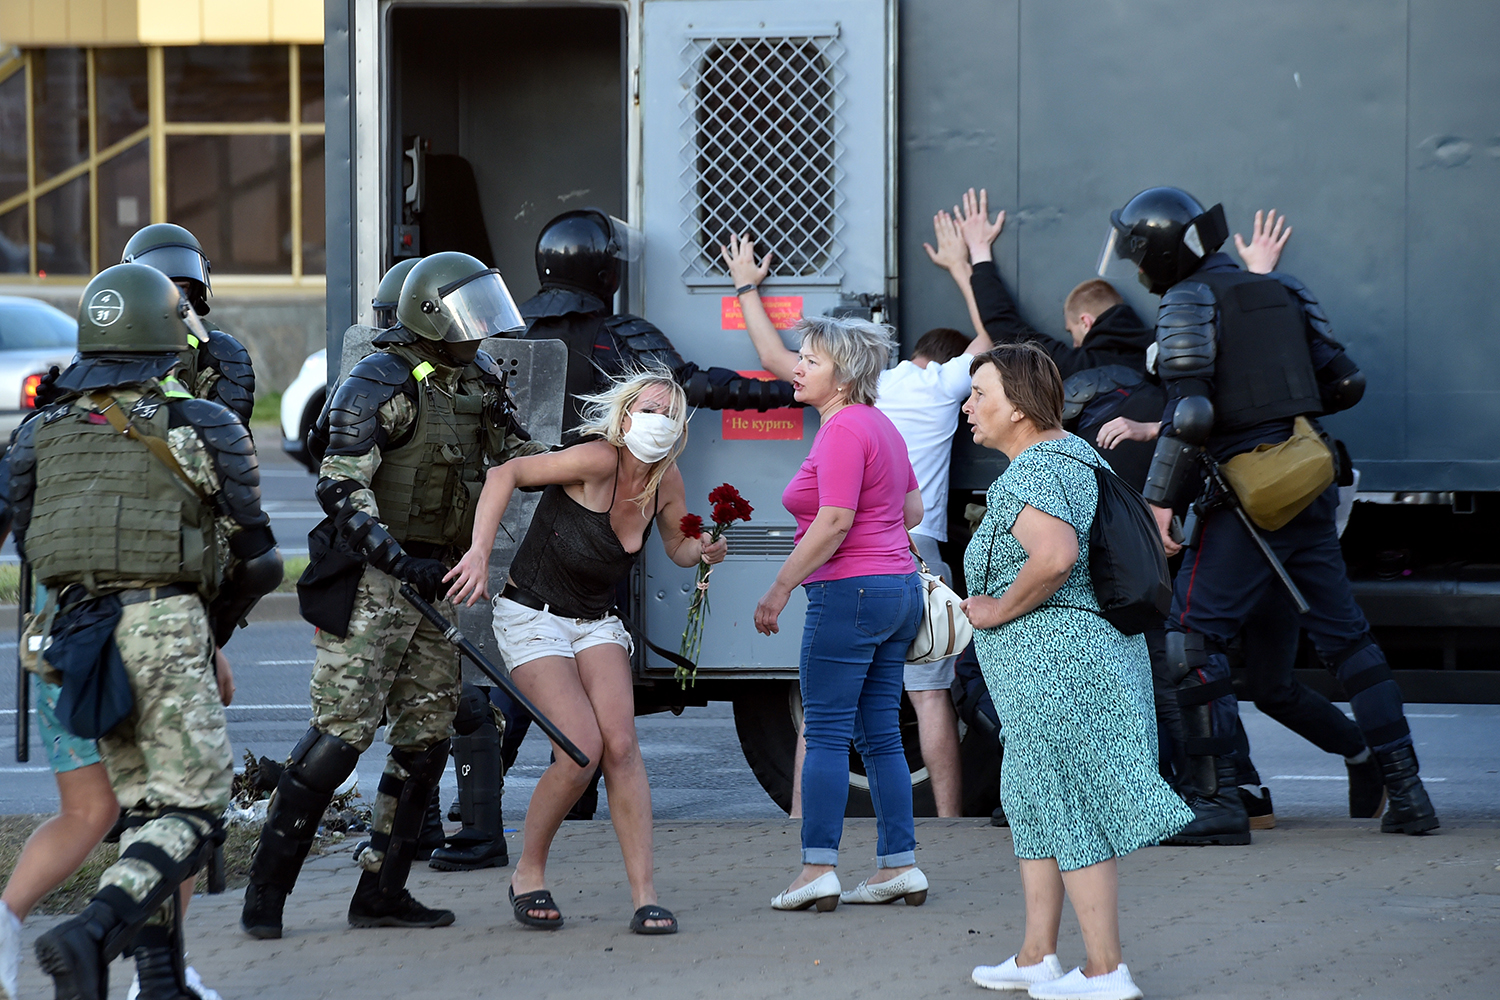 Riot police detain protesters during a rally of opposition supporters, who accuse strongman Aleksandr Lukashenko of falsifying the polls in the 2020 presidential election, in Minsk, Belarus, on Aug. 11, 2020.